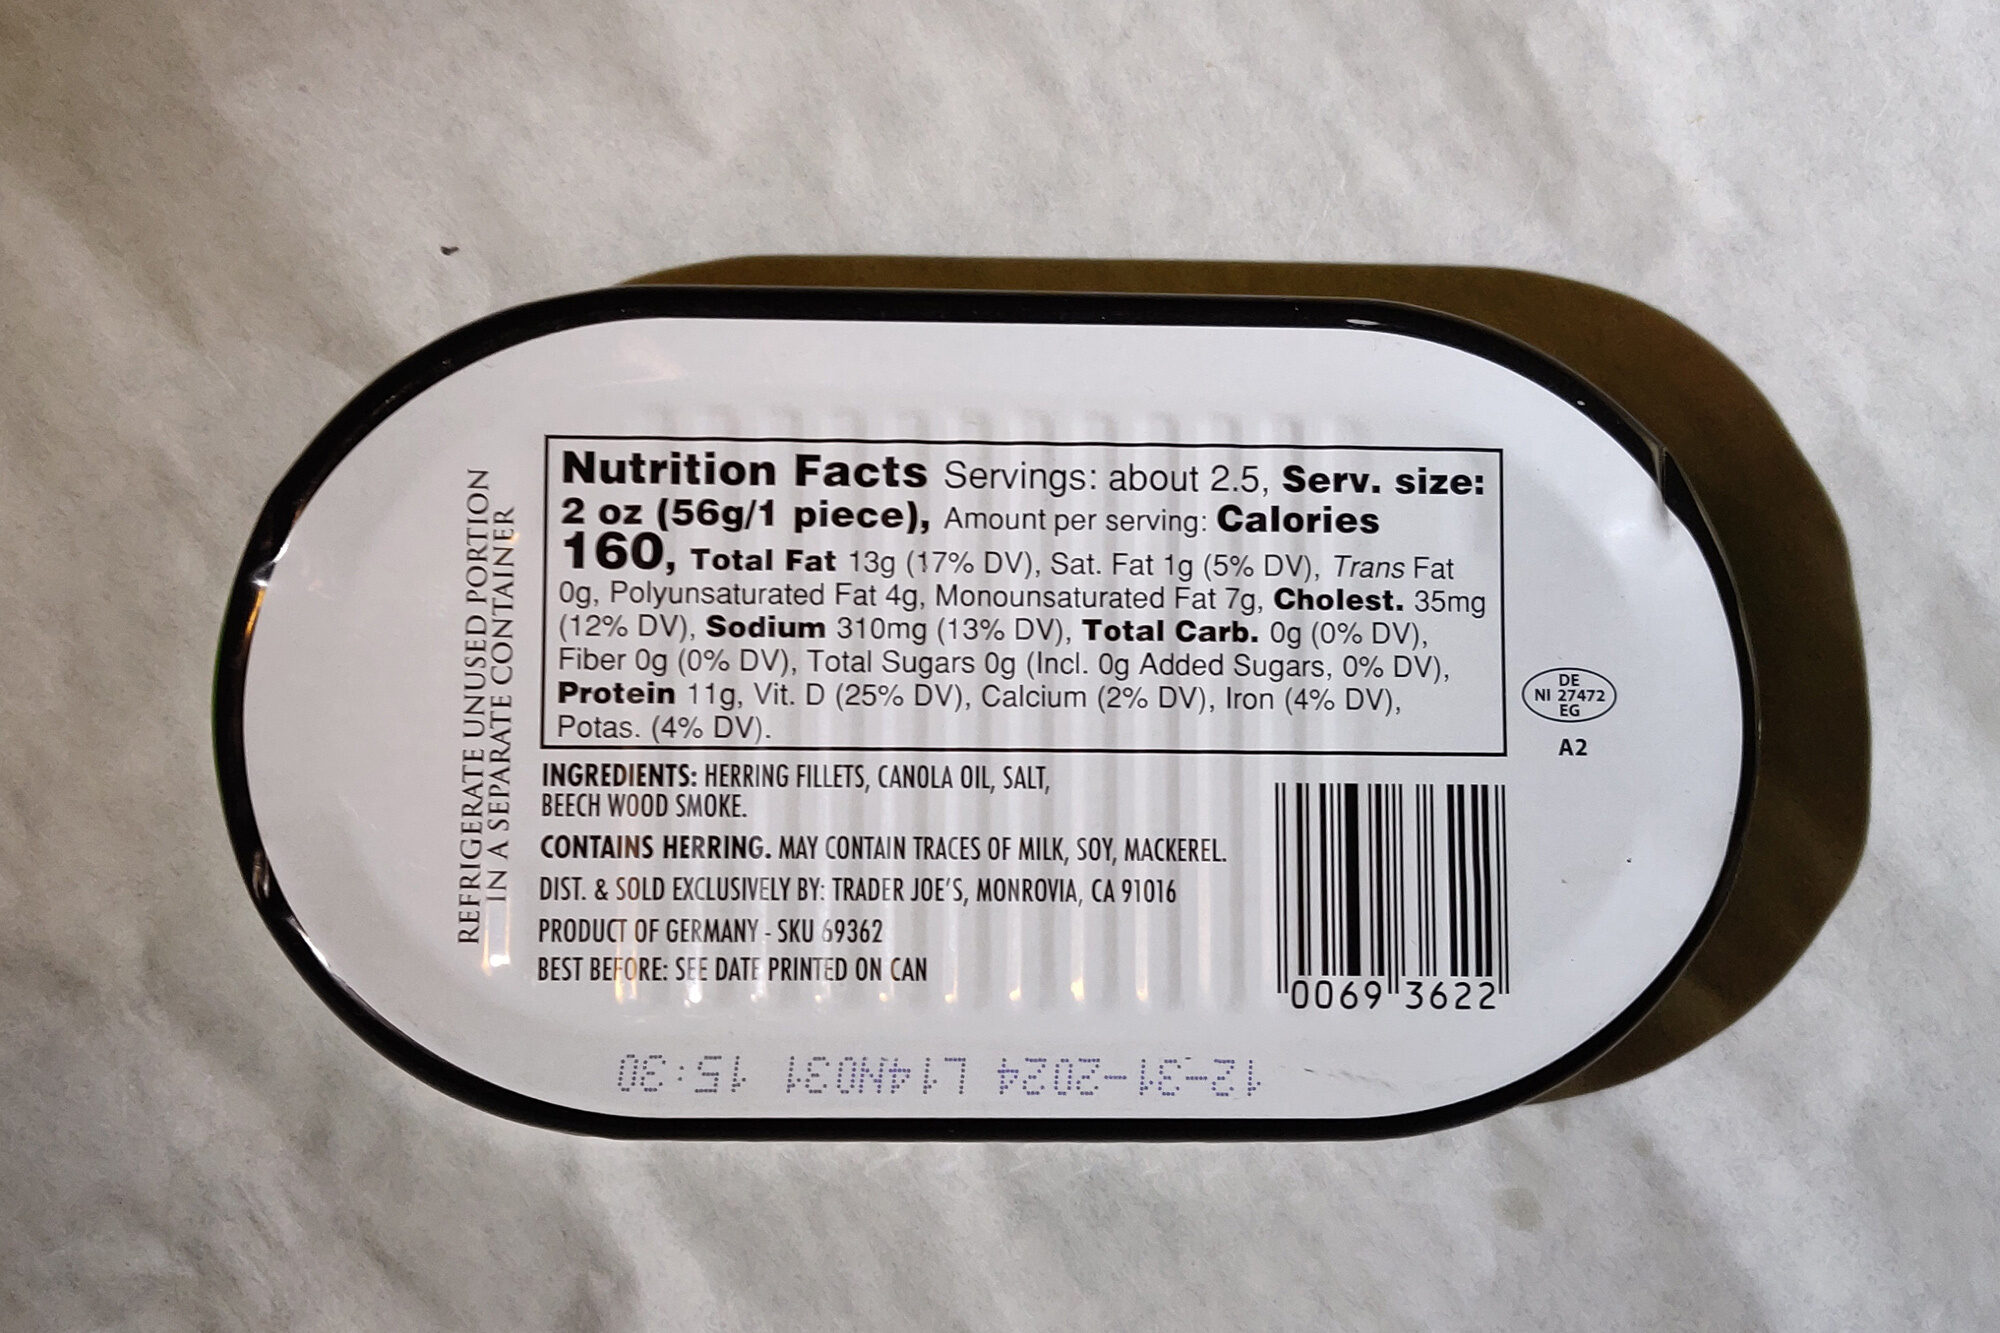 Kipper Fillets Wild Caught Smoked Herring in Canola Oil & Juices - Nutrition facts - en